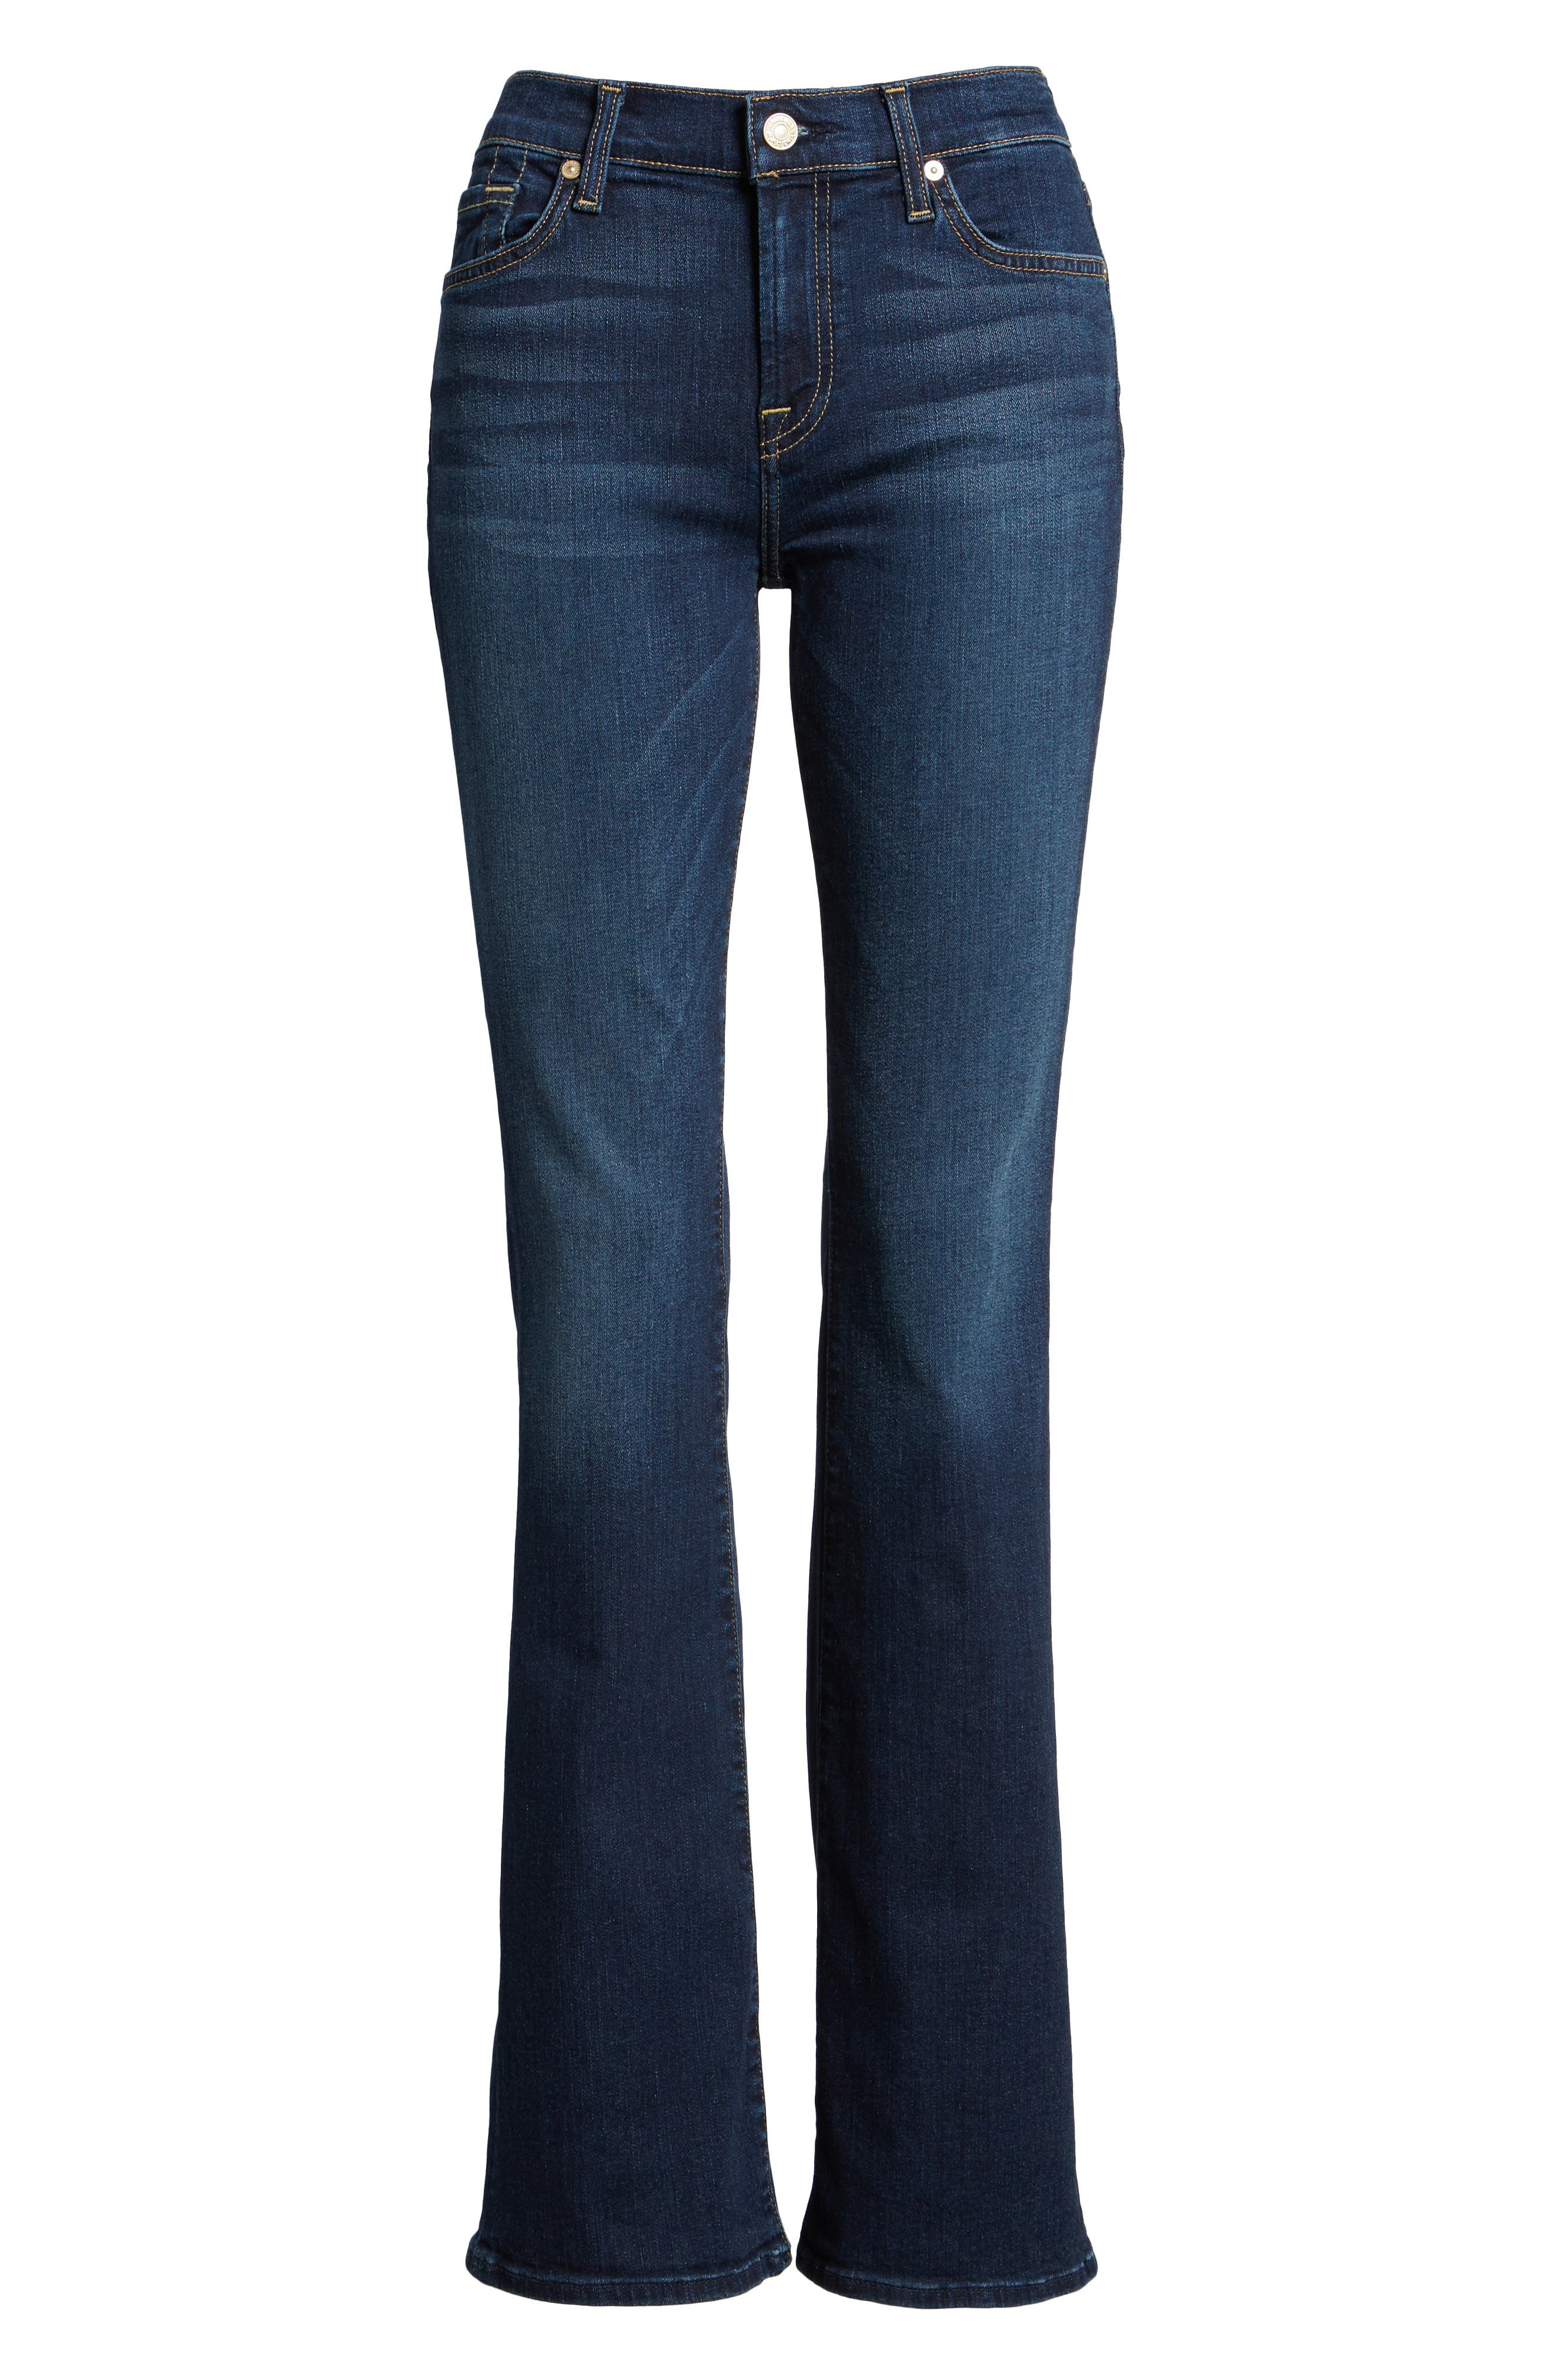 Tailorless - Icon Bootcut Jeans,                             Alternate thumbnail 7, color,                             400